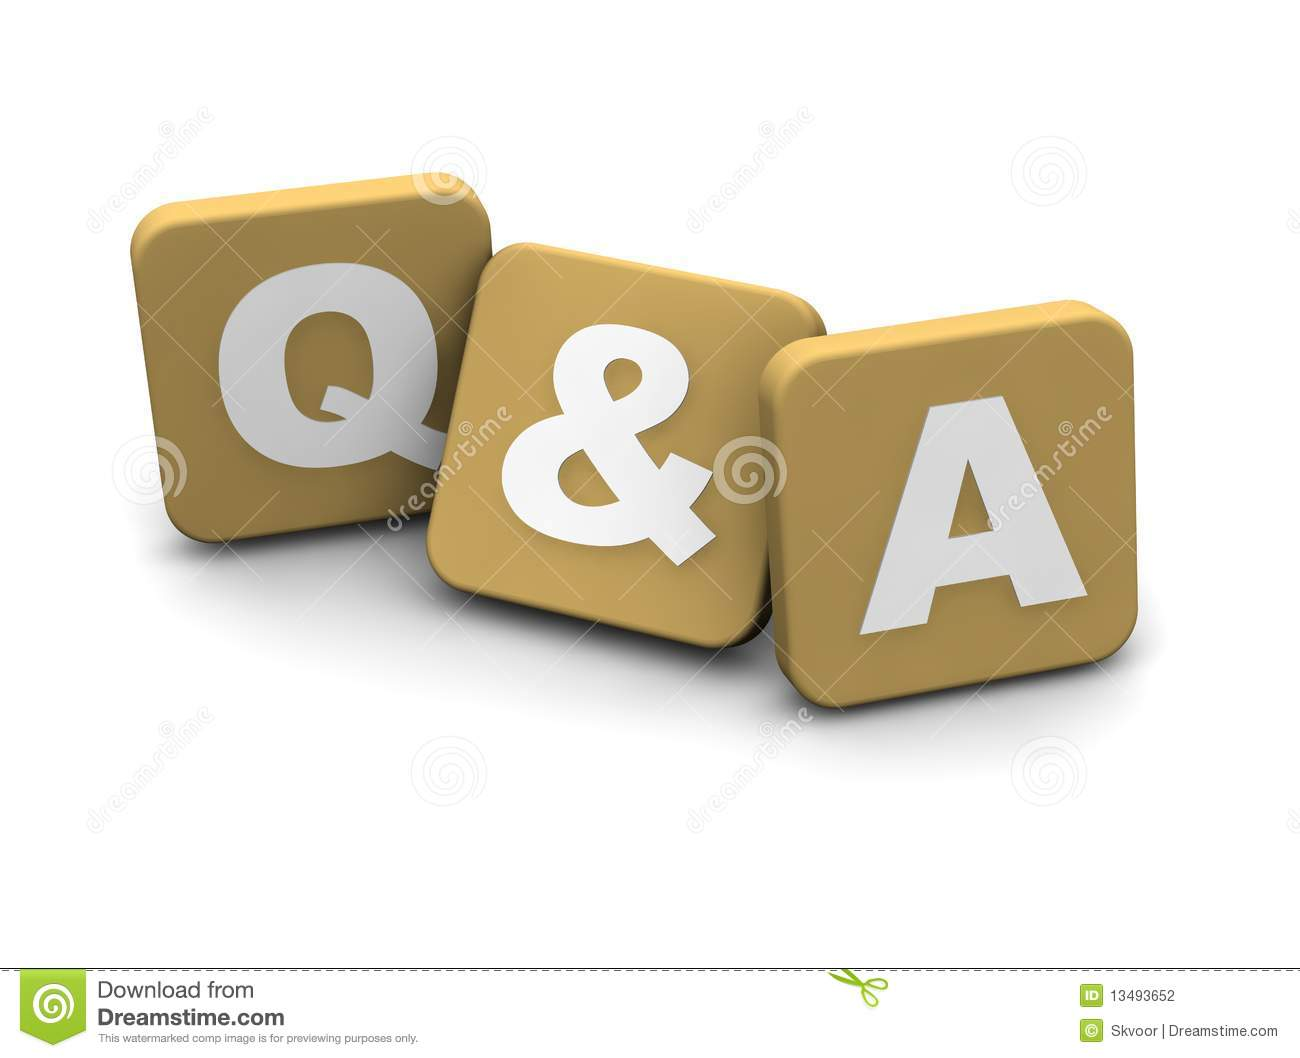 jee technical interview questions and answers ten explanation j2ee technical interview questions and answers